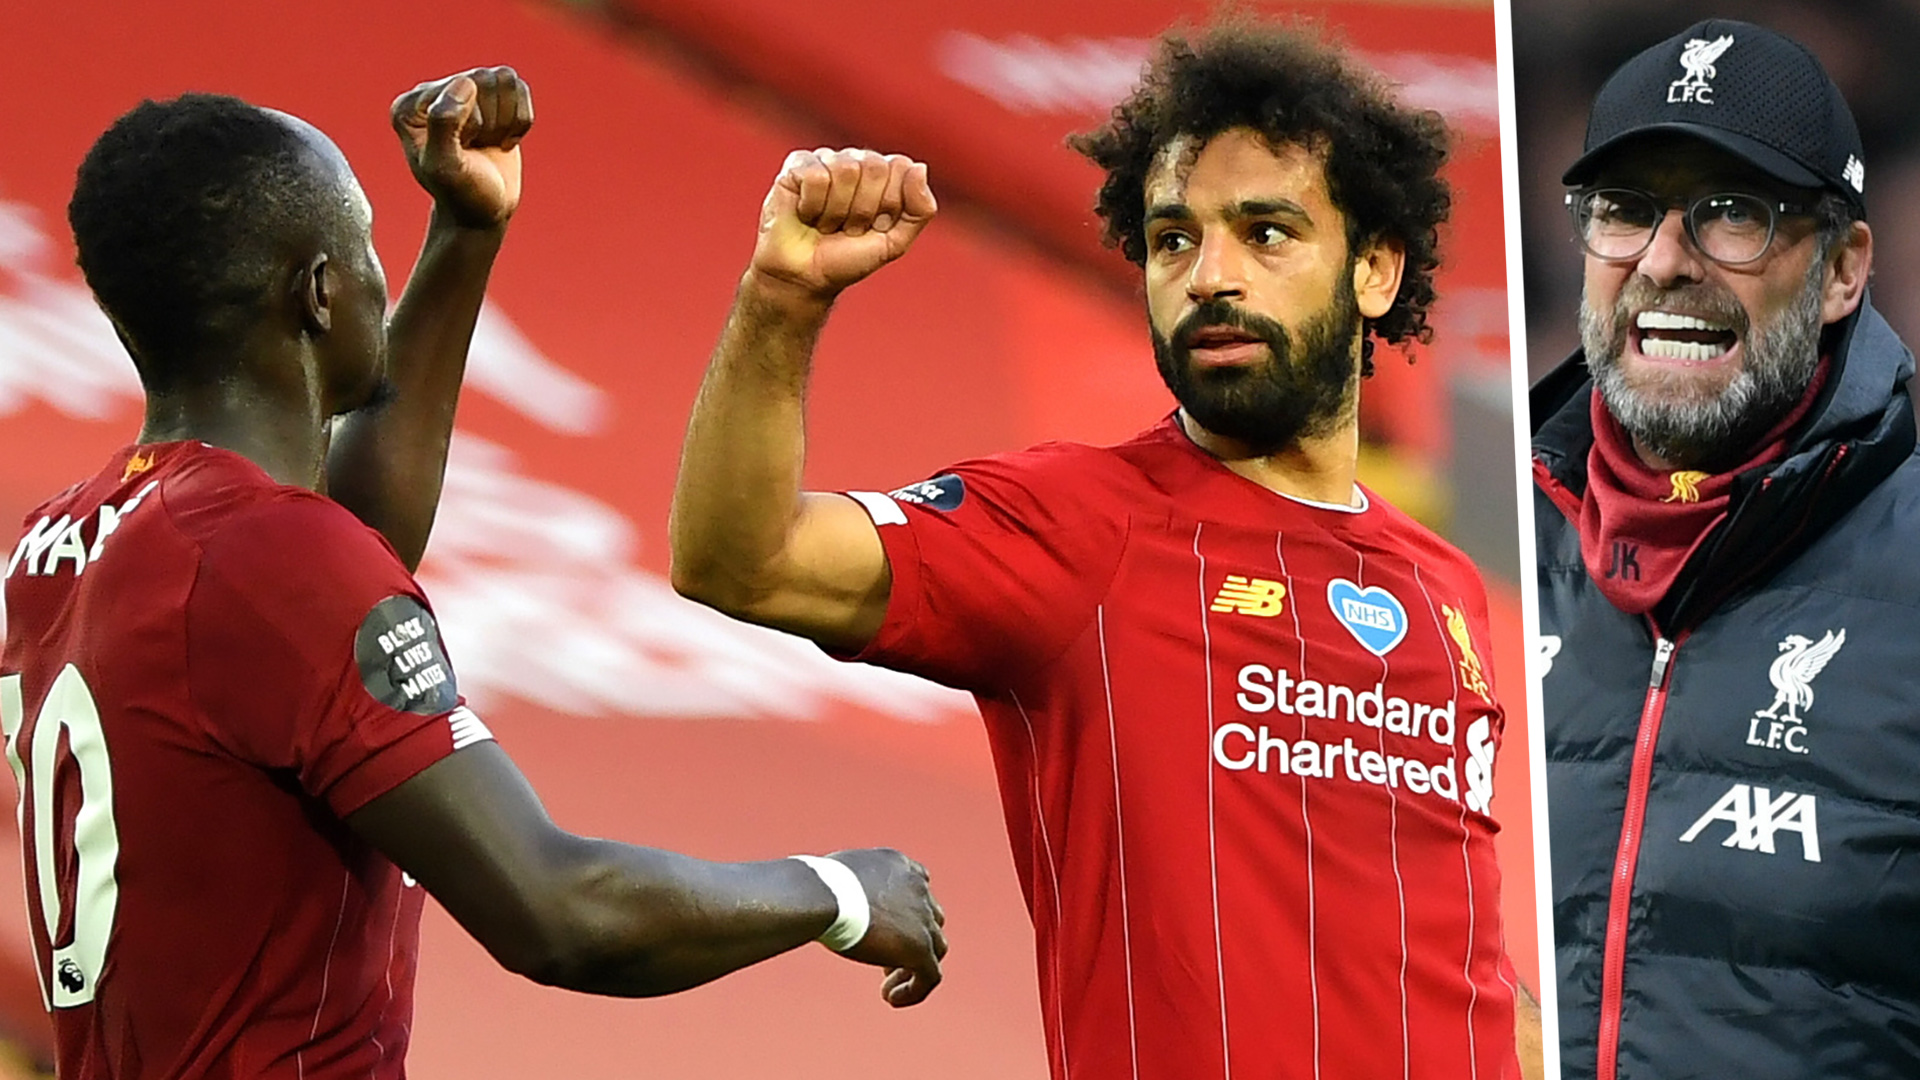 'What about Mane?' - Salah reveals first question he asked Klopp after signing for Liverpool